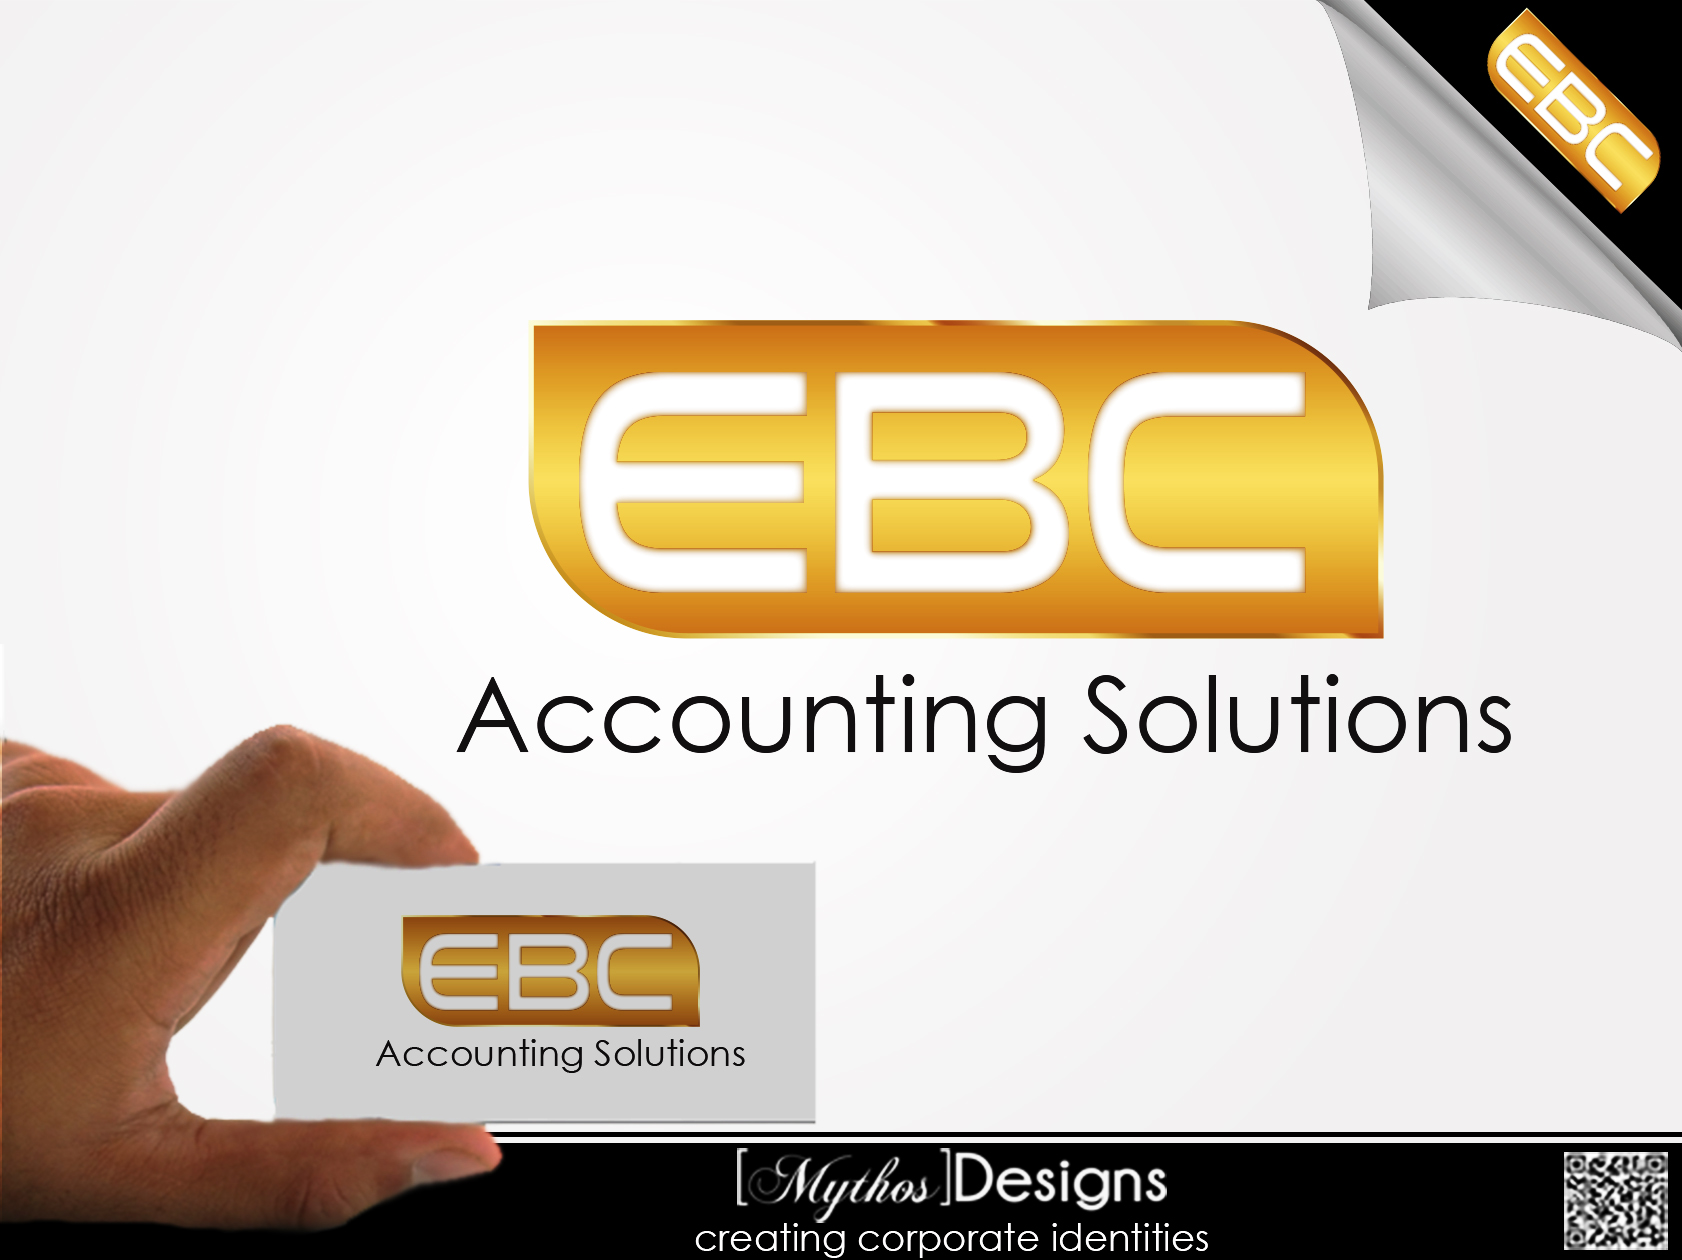 Logo Design by Mythos Designs - Entry No. 210 in the Logo Design Contest New Logo Design for EBC Accounting Solutions.